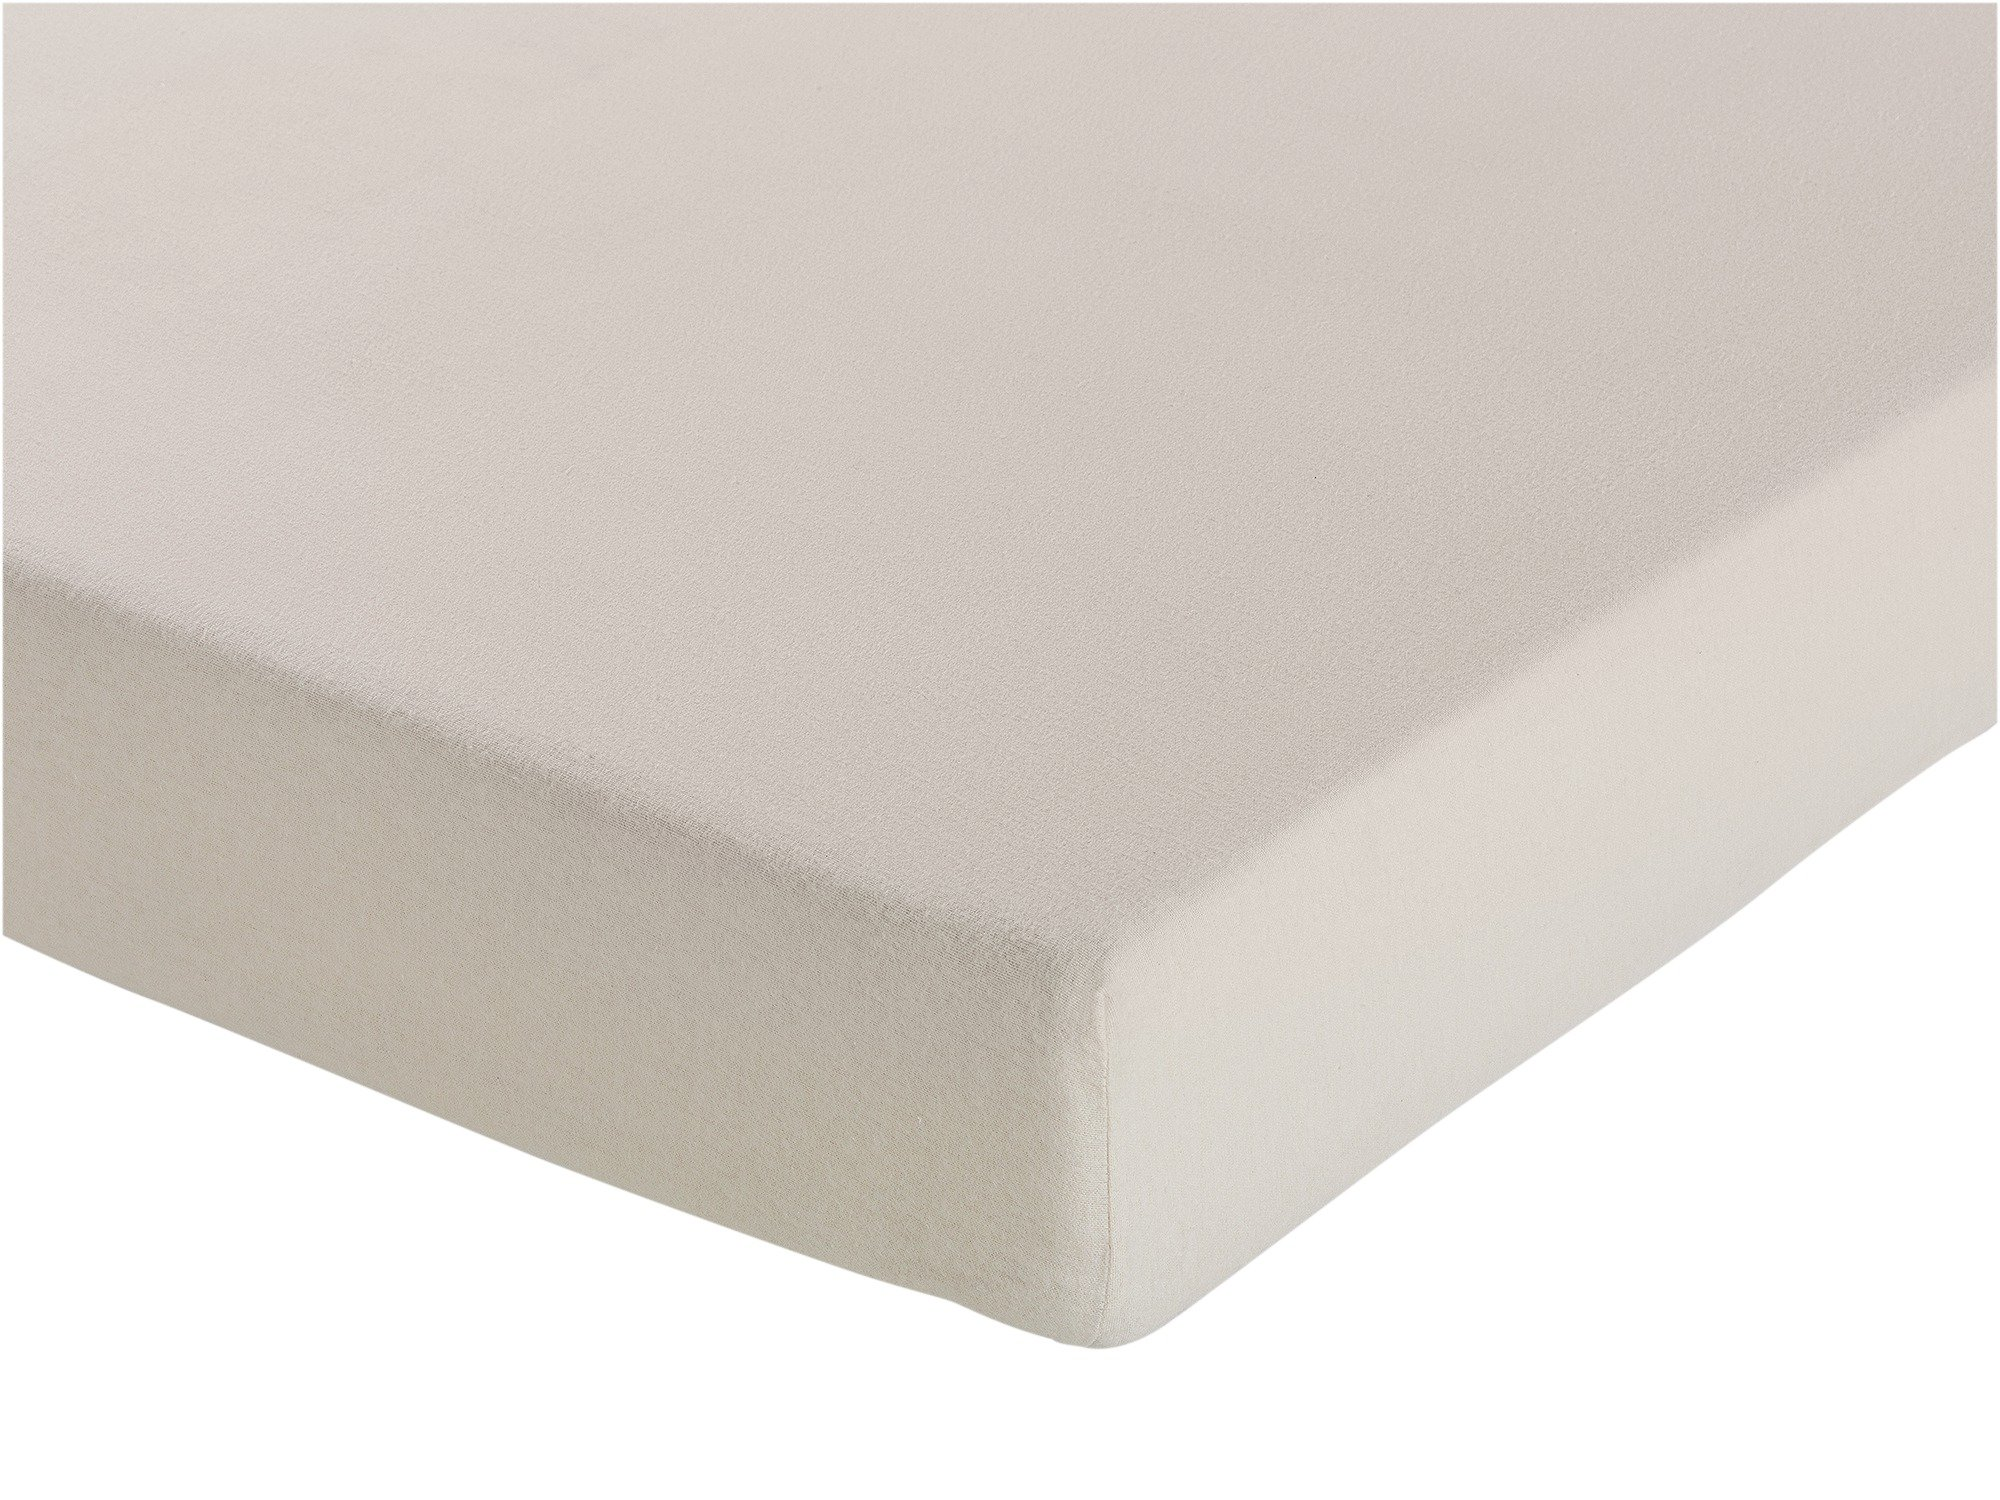 Collection - Cream Brushed Cotton Fitted - Sheet - Single